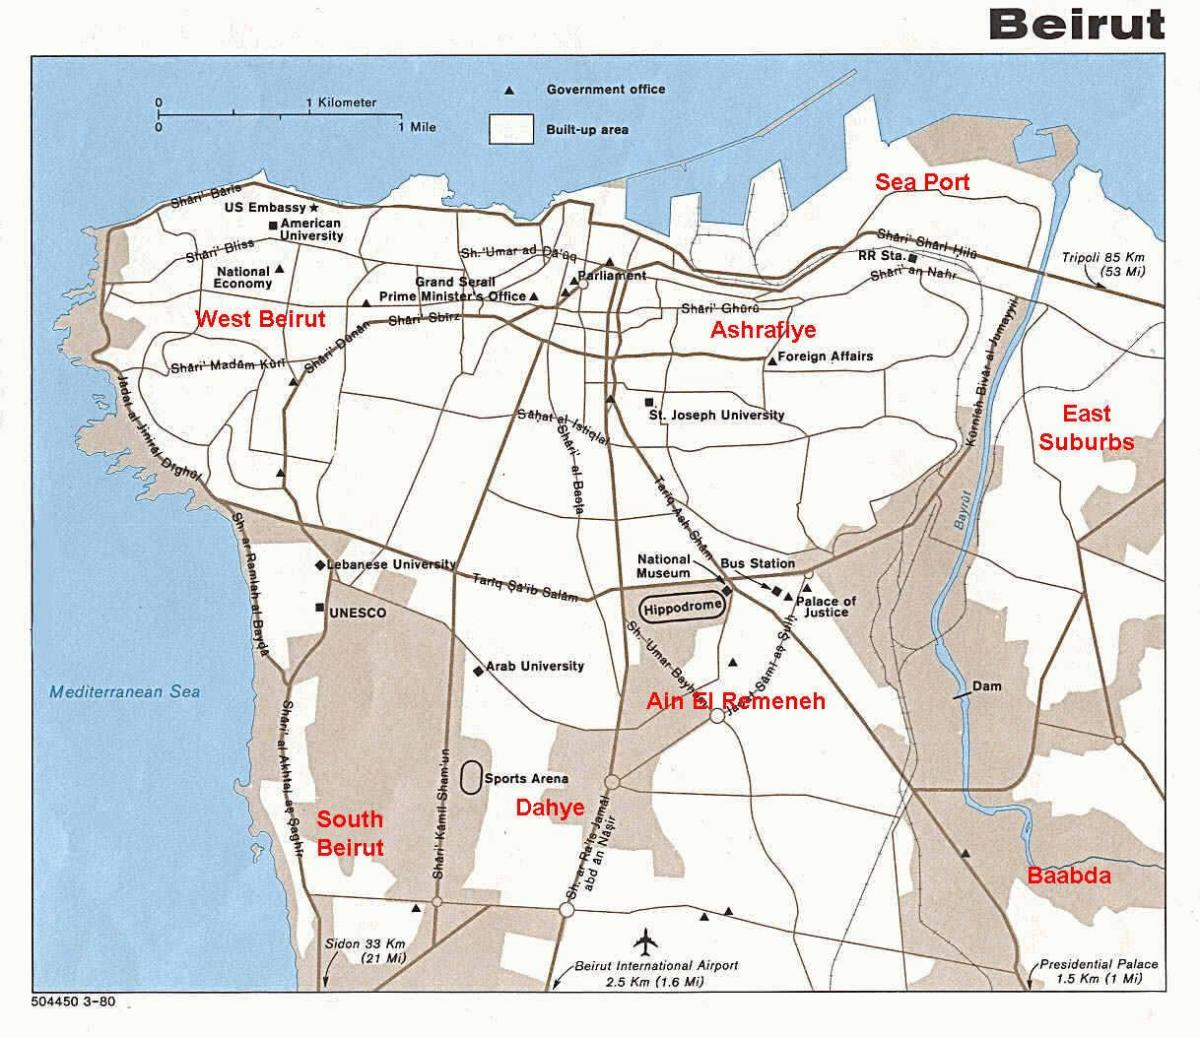 map of beirut Lebanon